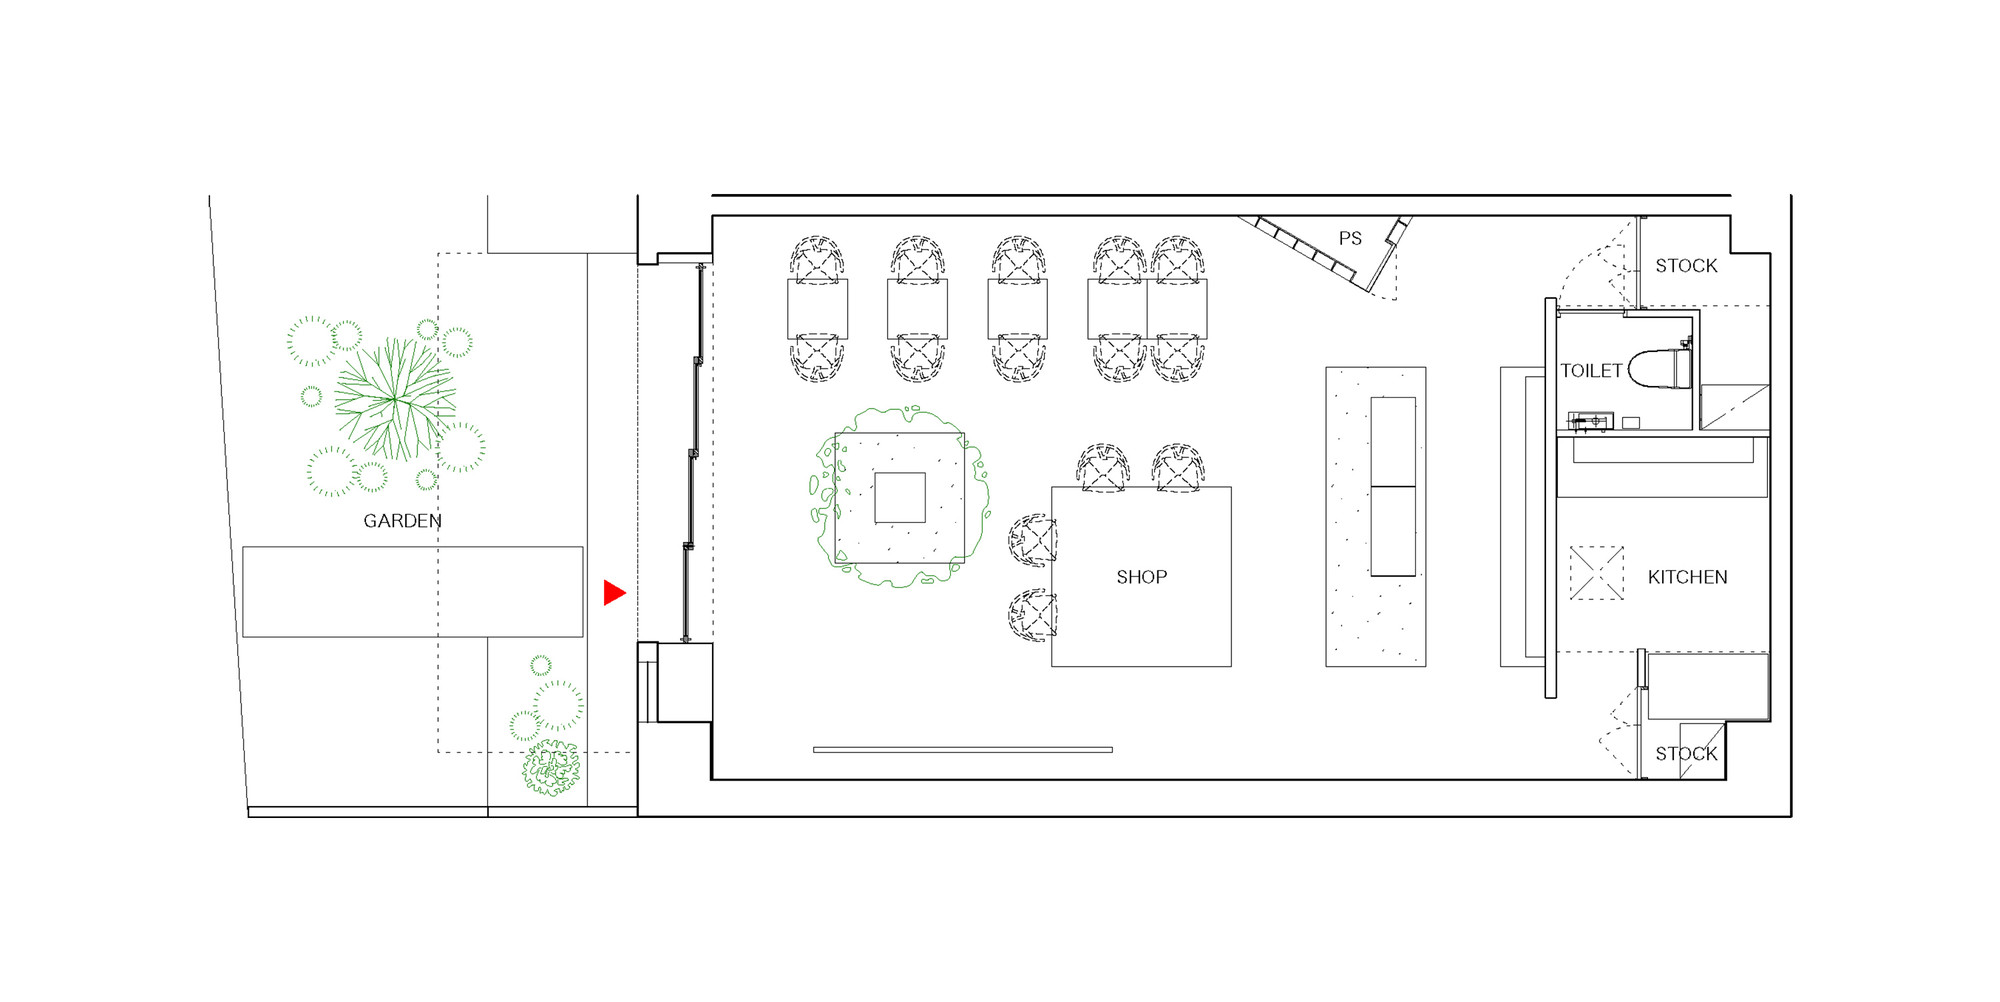 Simple Floor Plan With Dimensions Gallery Of Ito Biyori Cafe Ninkipen 8